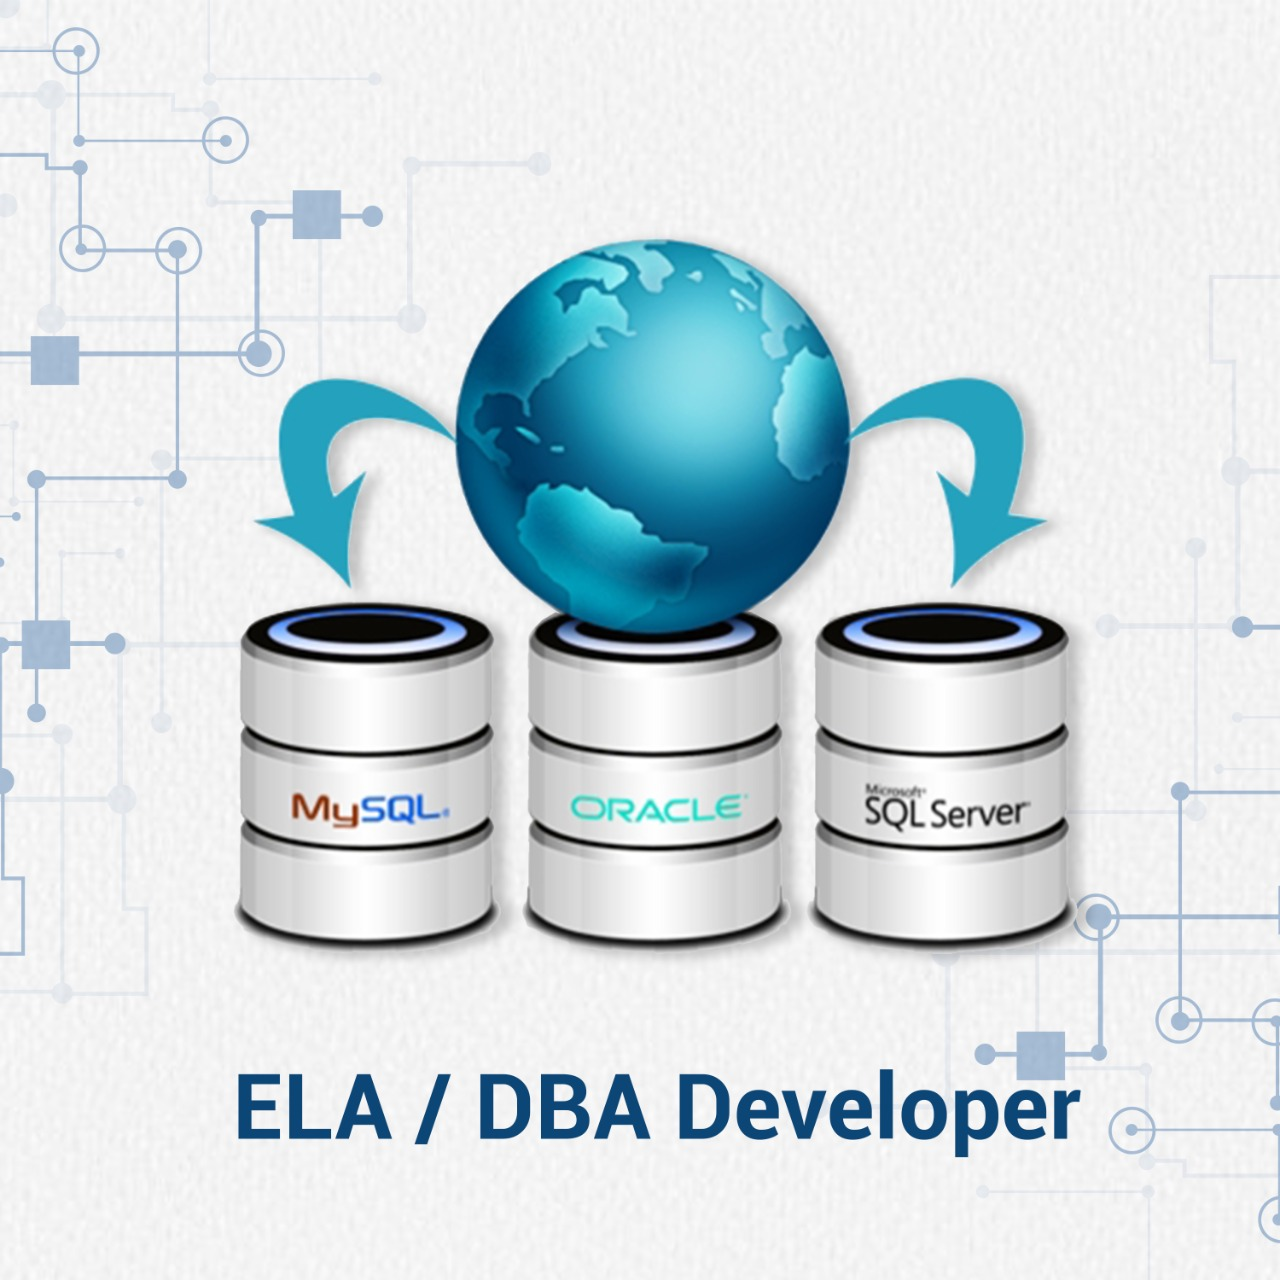 DBA-ETL Developer - SystemOneX